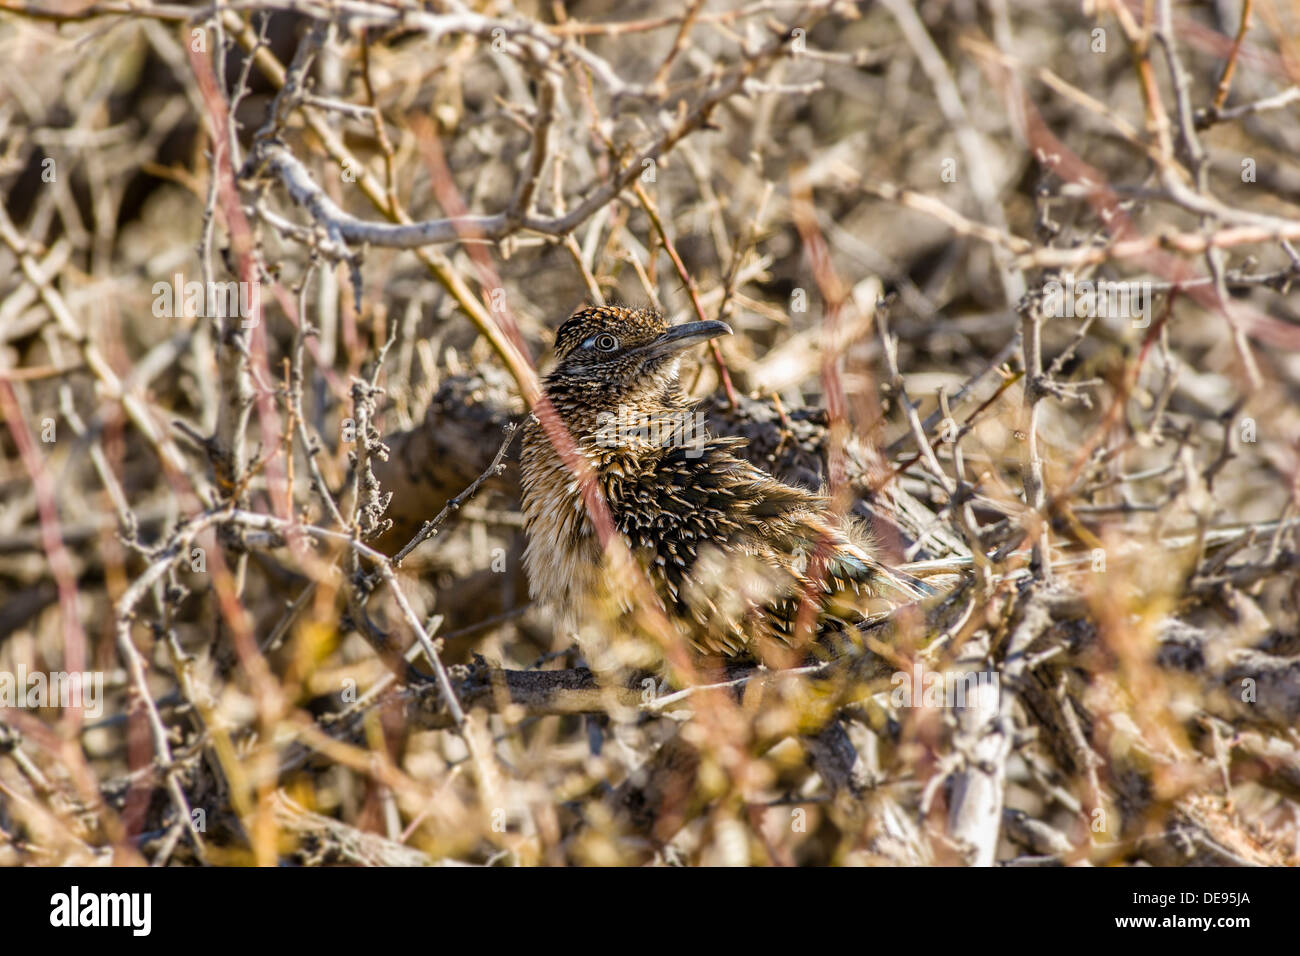 Well camouflaged roadrunner [geococcyx californianus] looks out from hiding place in brush Furnace Creek Death Valley National Park, California, USA. - Stock Image